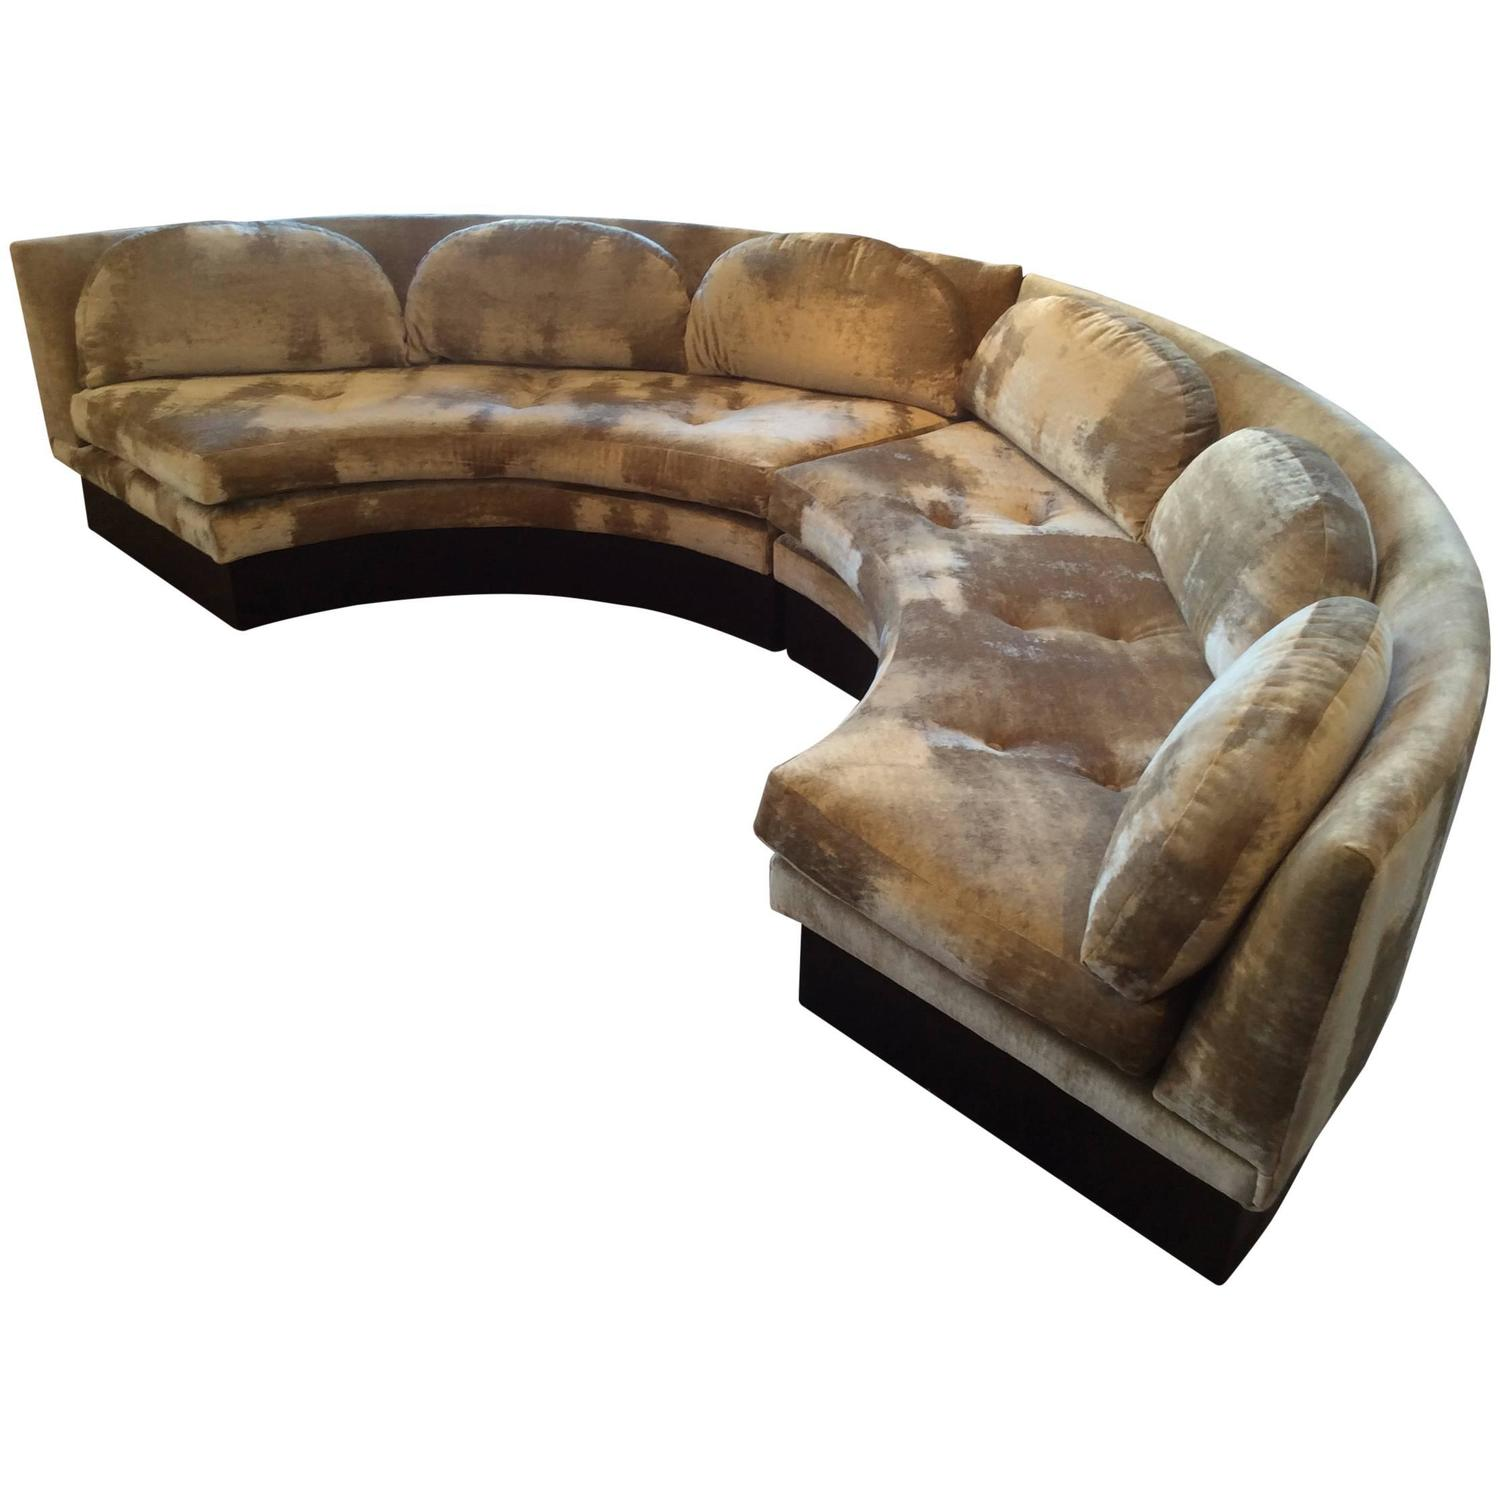 Vintage Curved Sectional Sofa by Adrian Pearsall for Craft